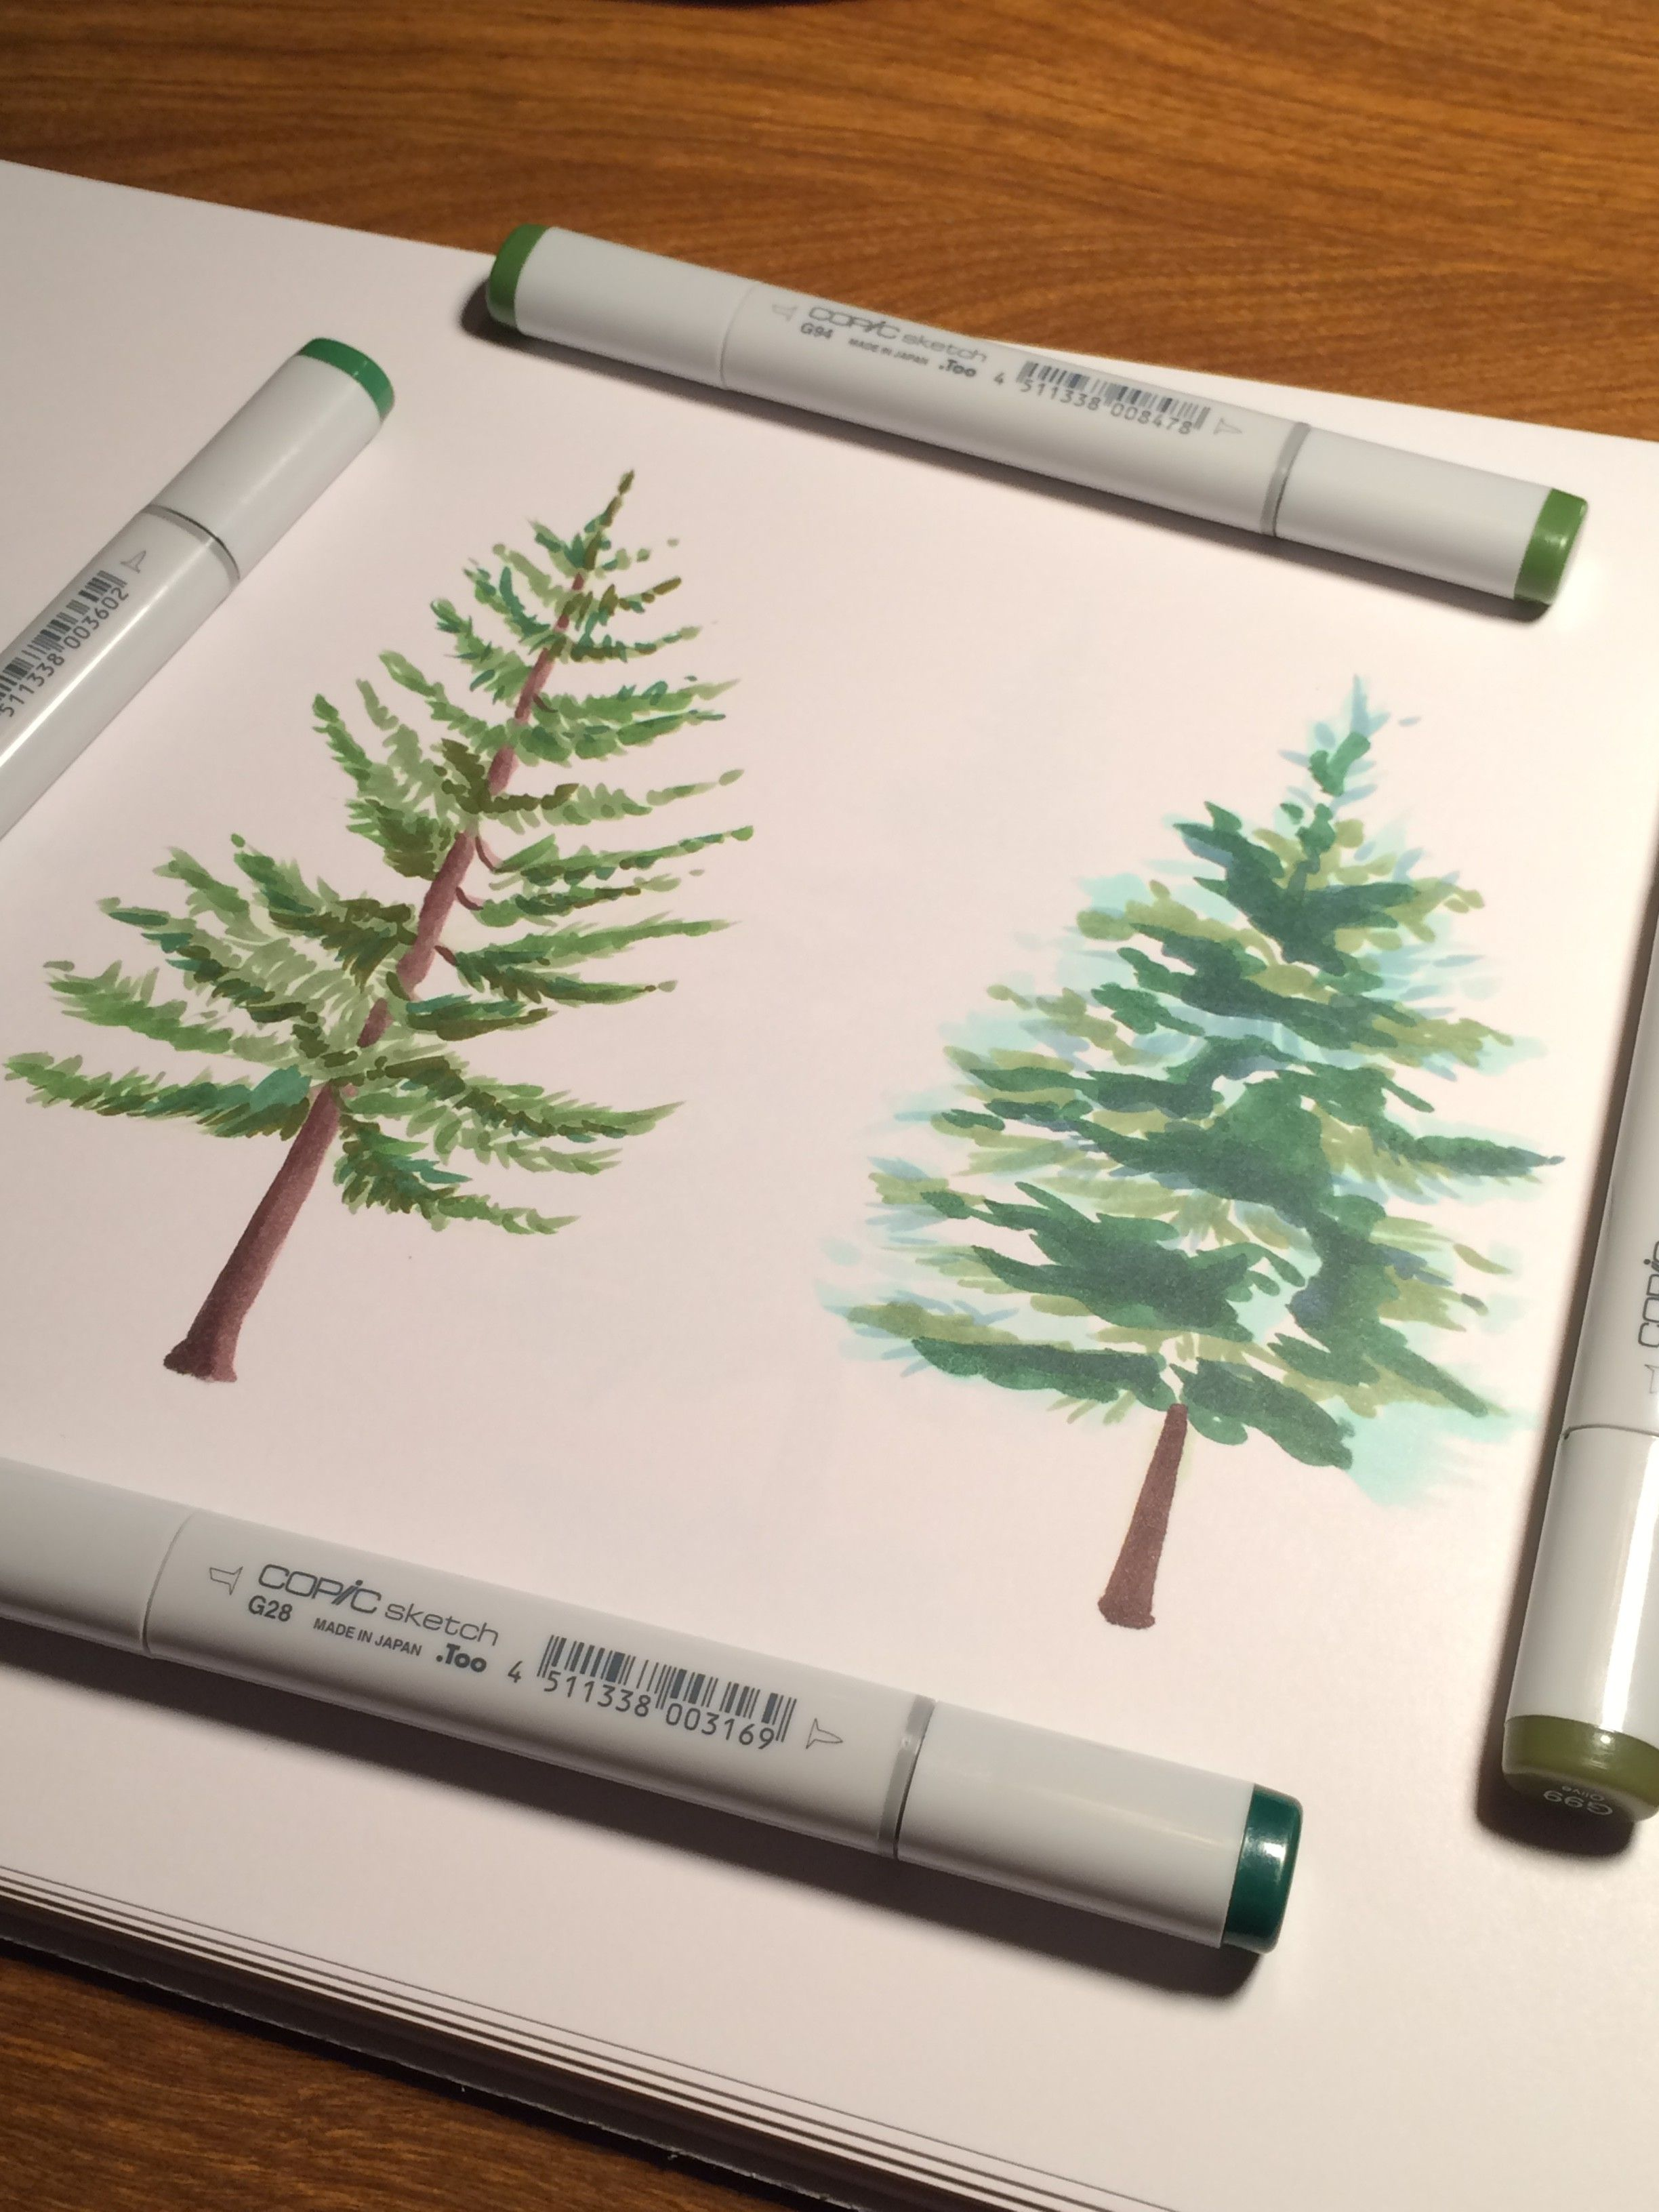 Things To Draw With Markers : things, markers, Trees, Copic, Markers, [Video], Marker, Drawings